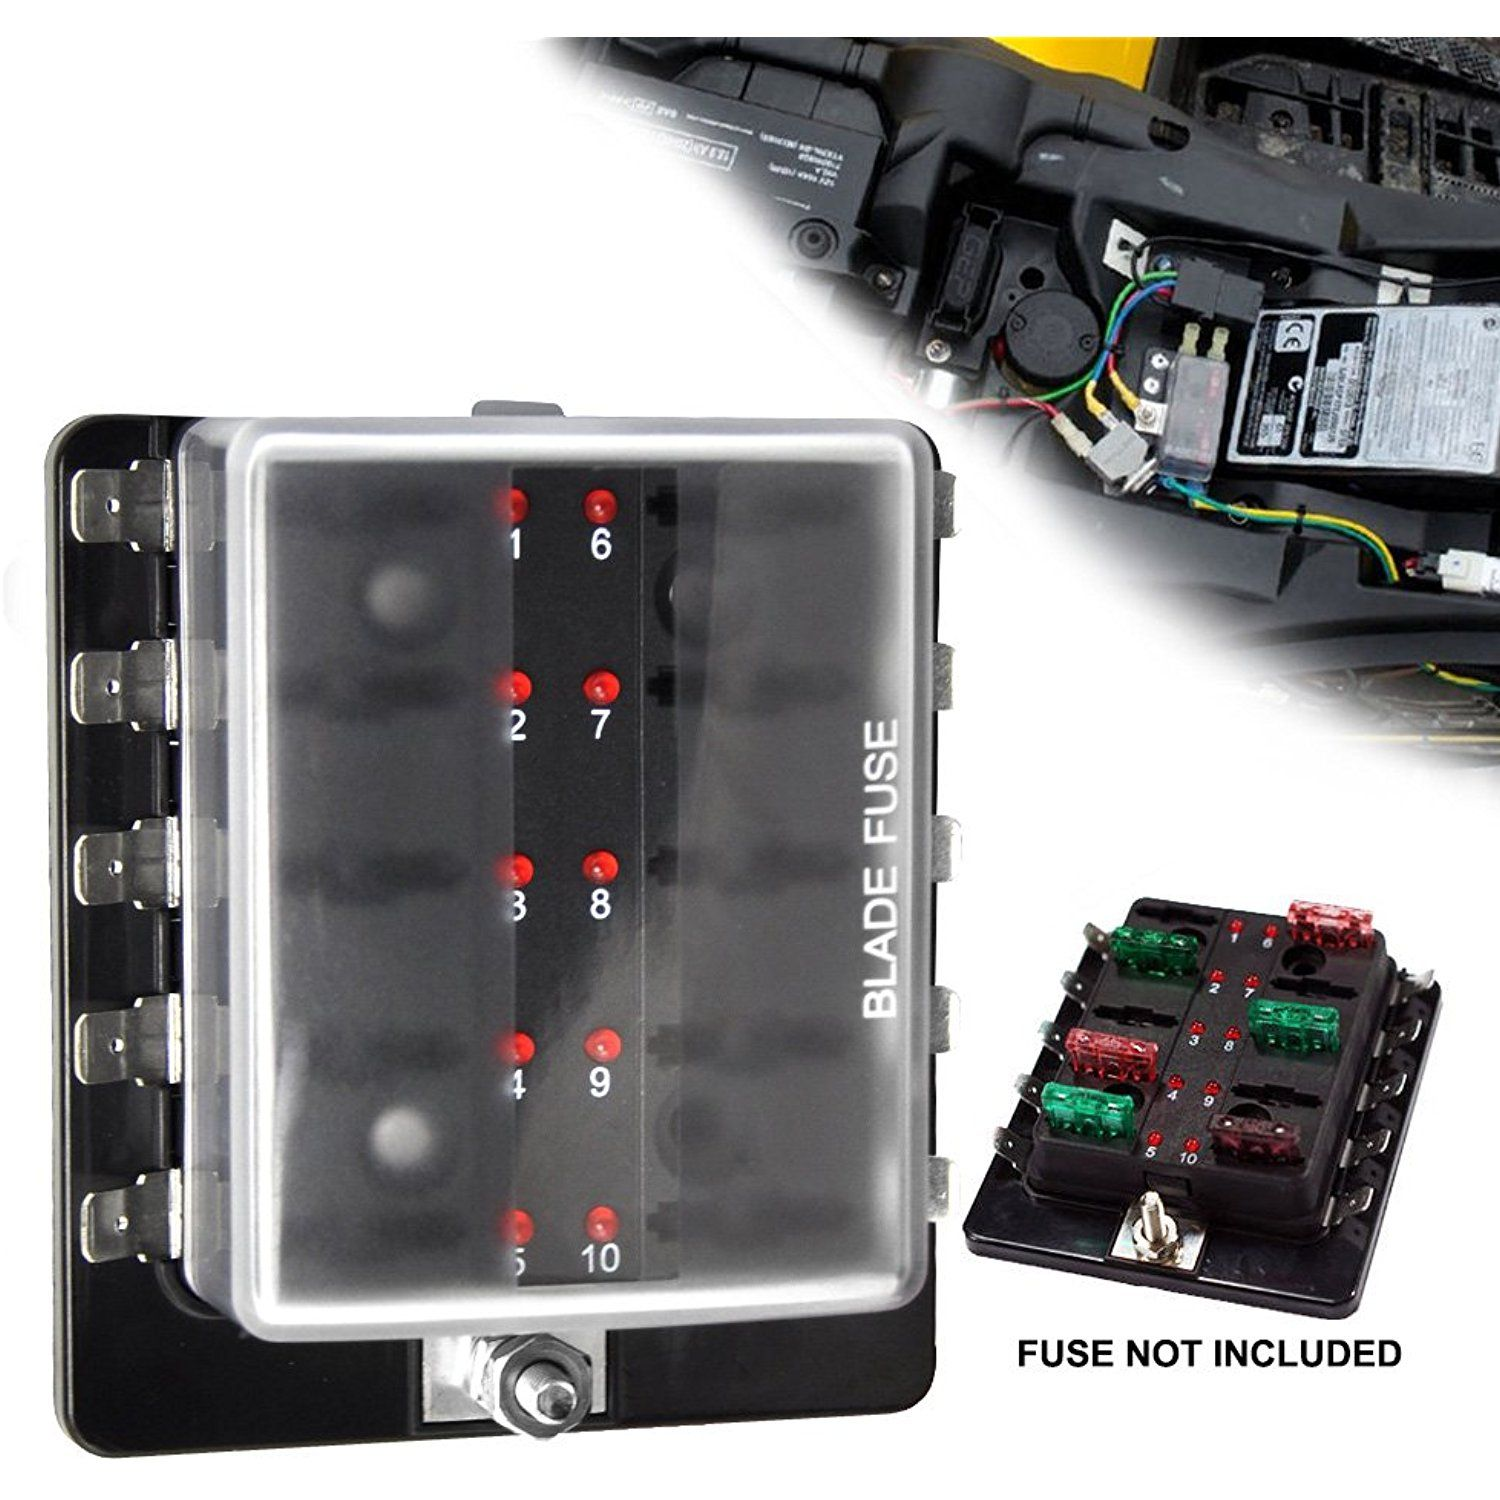 hight resolution of liteway 10 way blade fuse holder box 12 32v led illuminated automotive fuse block for car boat marine trike with led warning light kit 2 years warranty